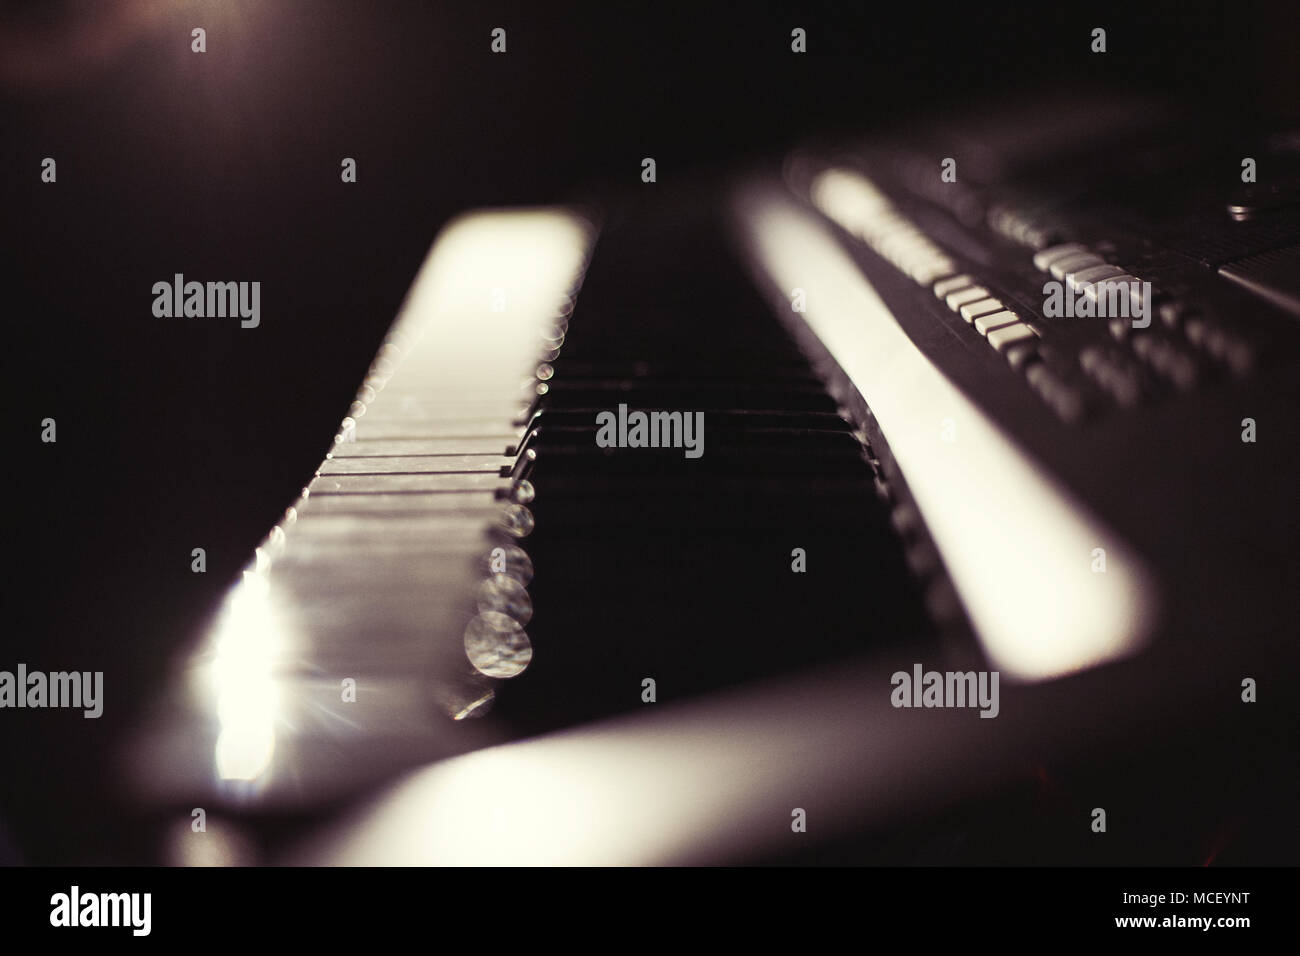 Synthesizer keyboard in the dark - Stock Image